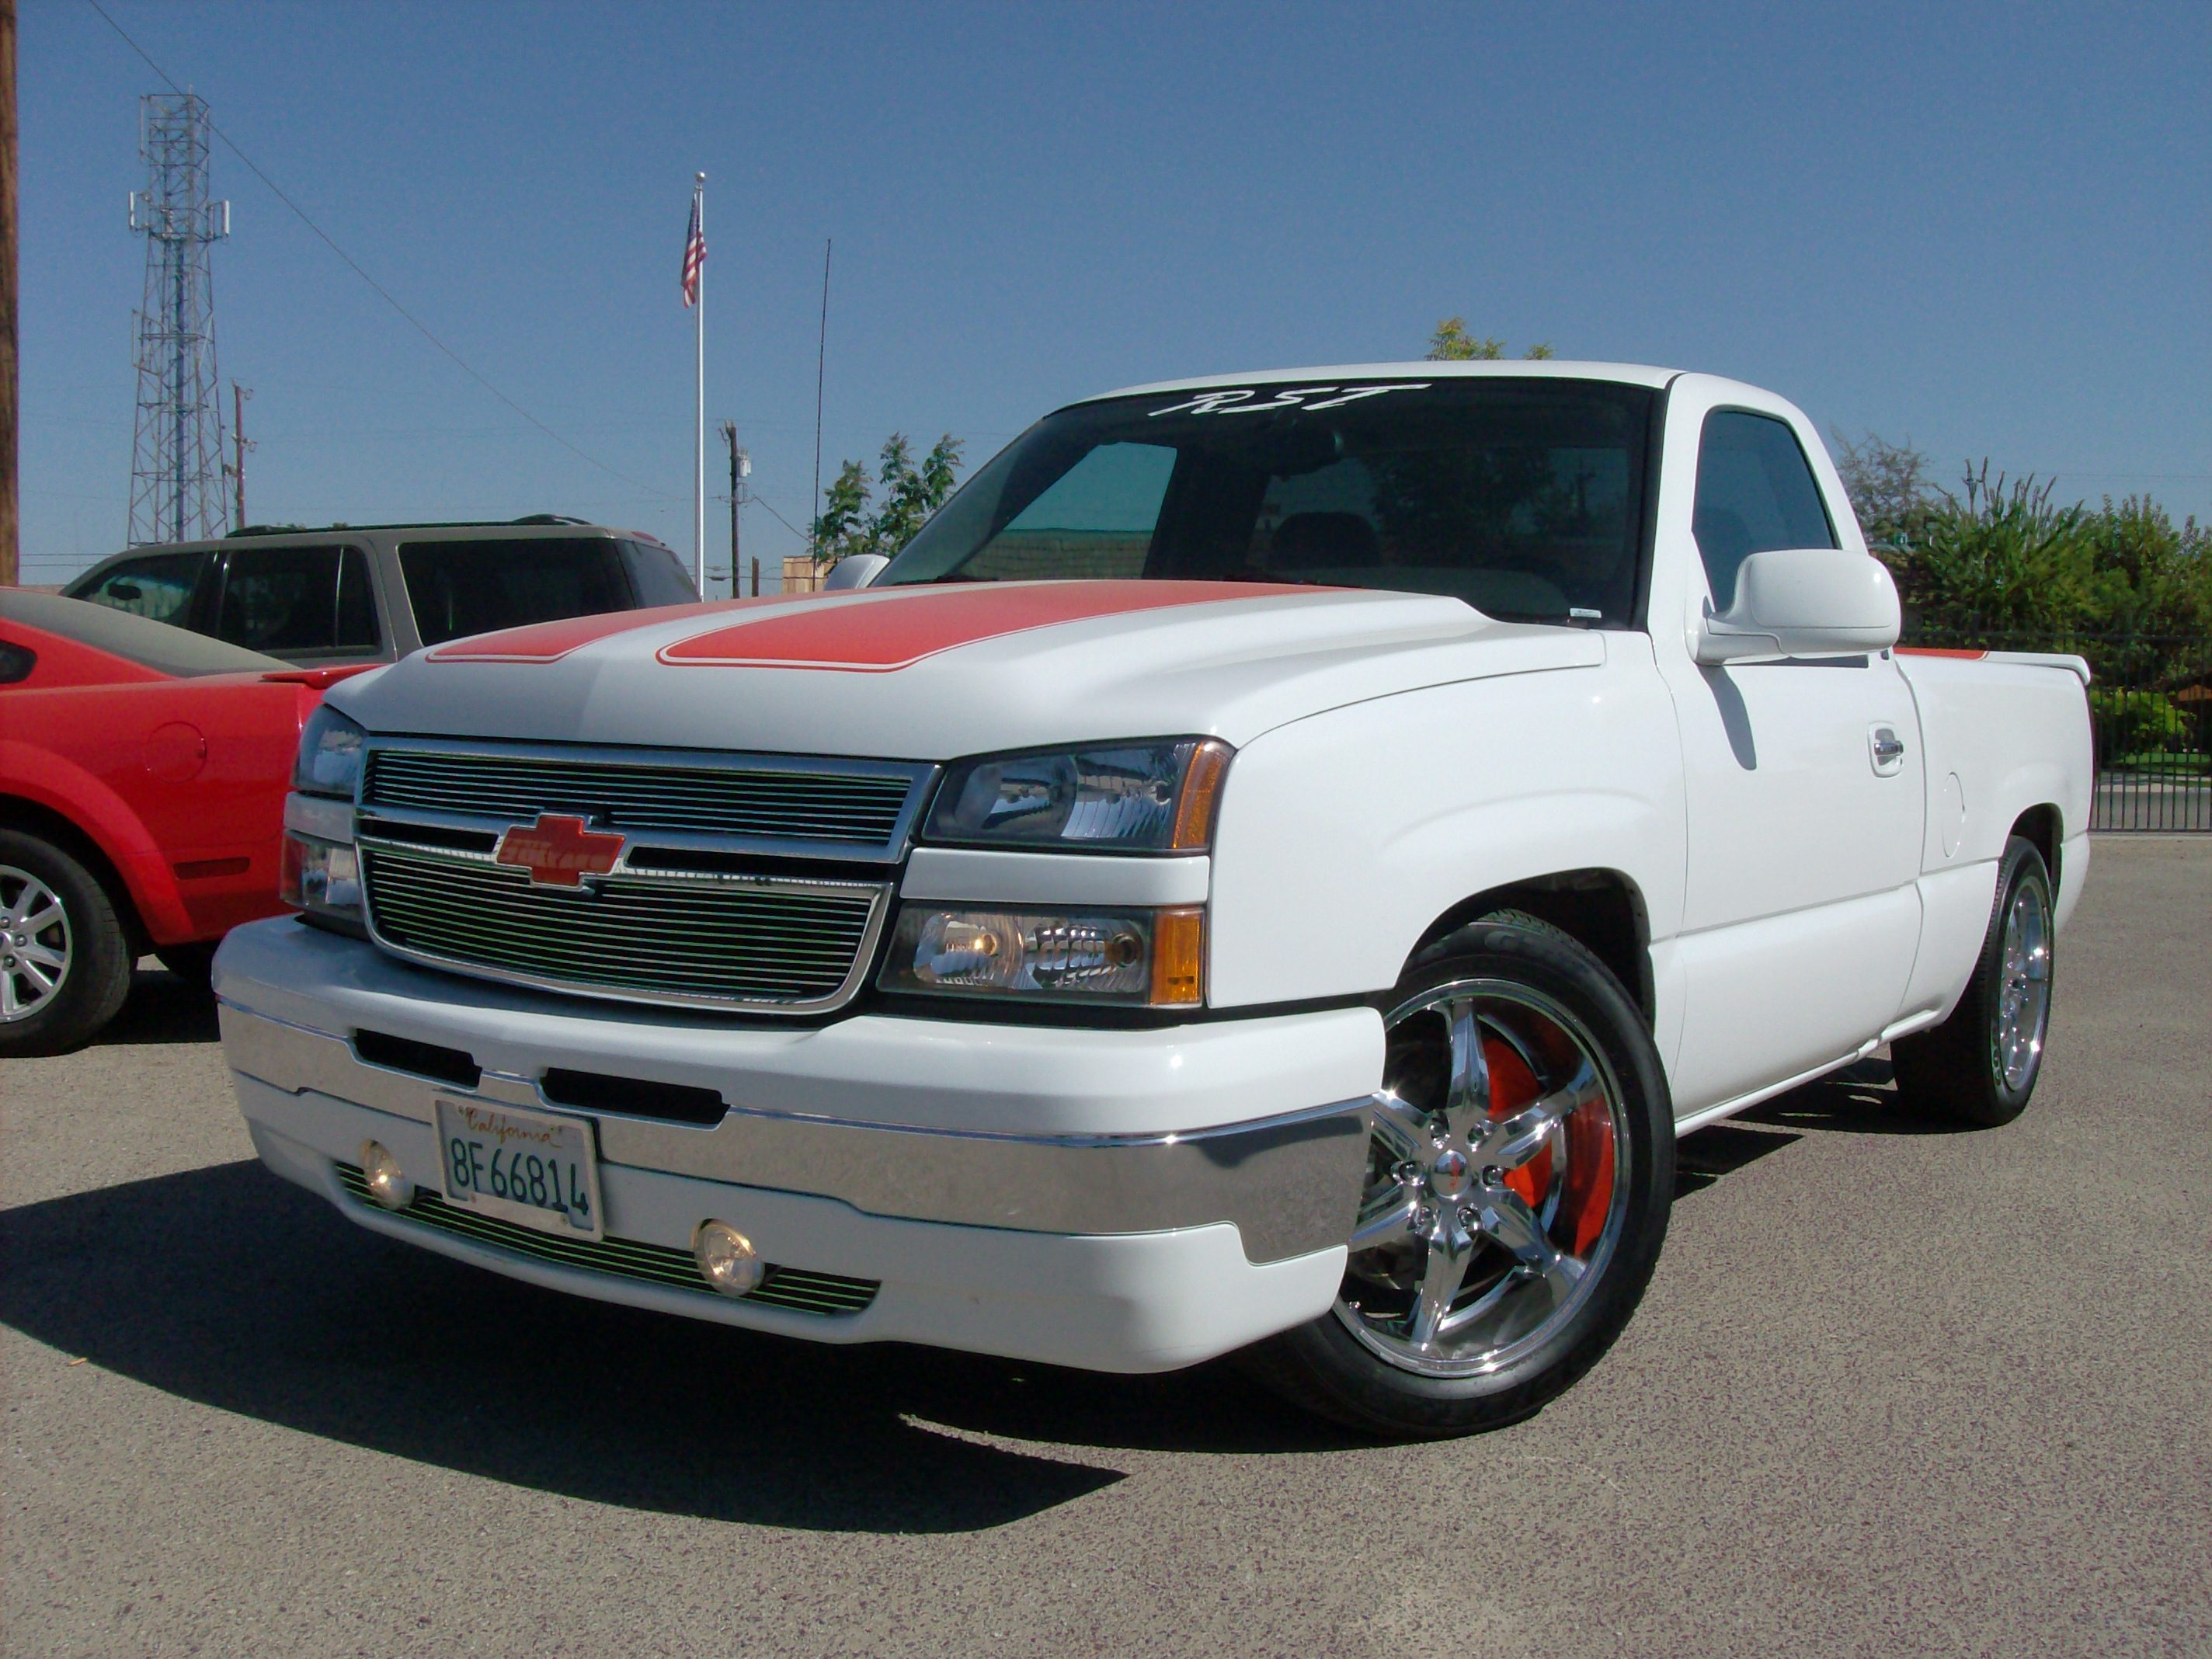 moss rst 2006 chevrolet silverado 1500 regular cab specs photos modification info at cardomain. Black Bedroom Furniture Sets. Home Design Ideas